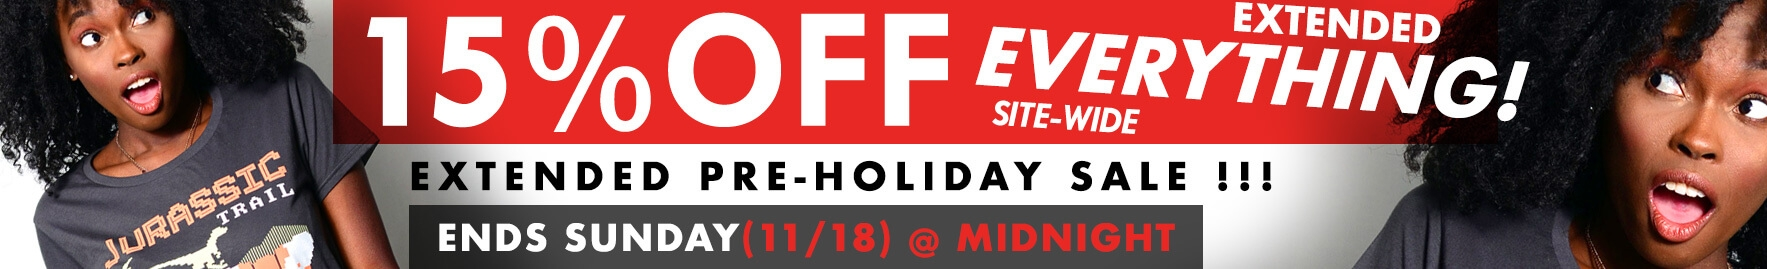 Pre-Holiday Sale - 15% Off Everything - Ends November 18th at Midnight